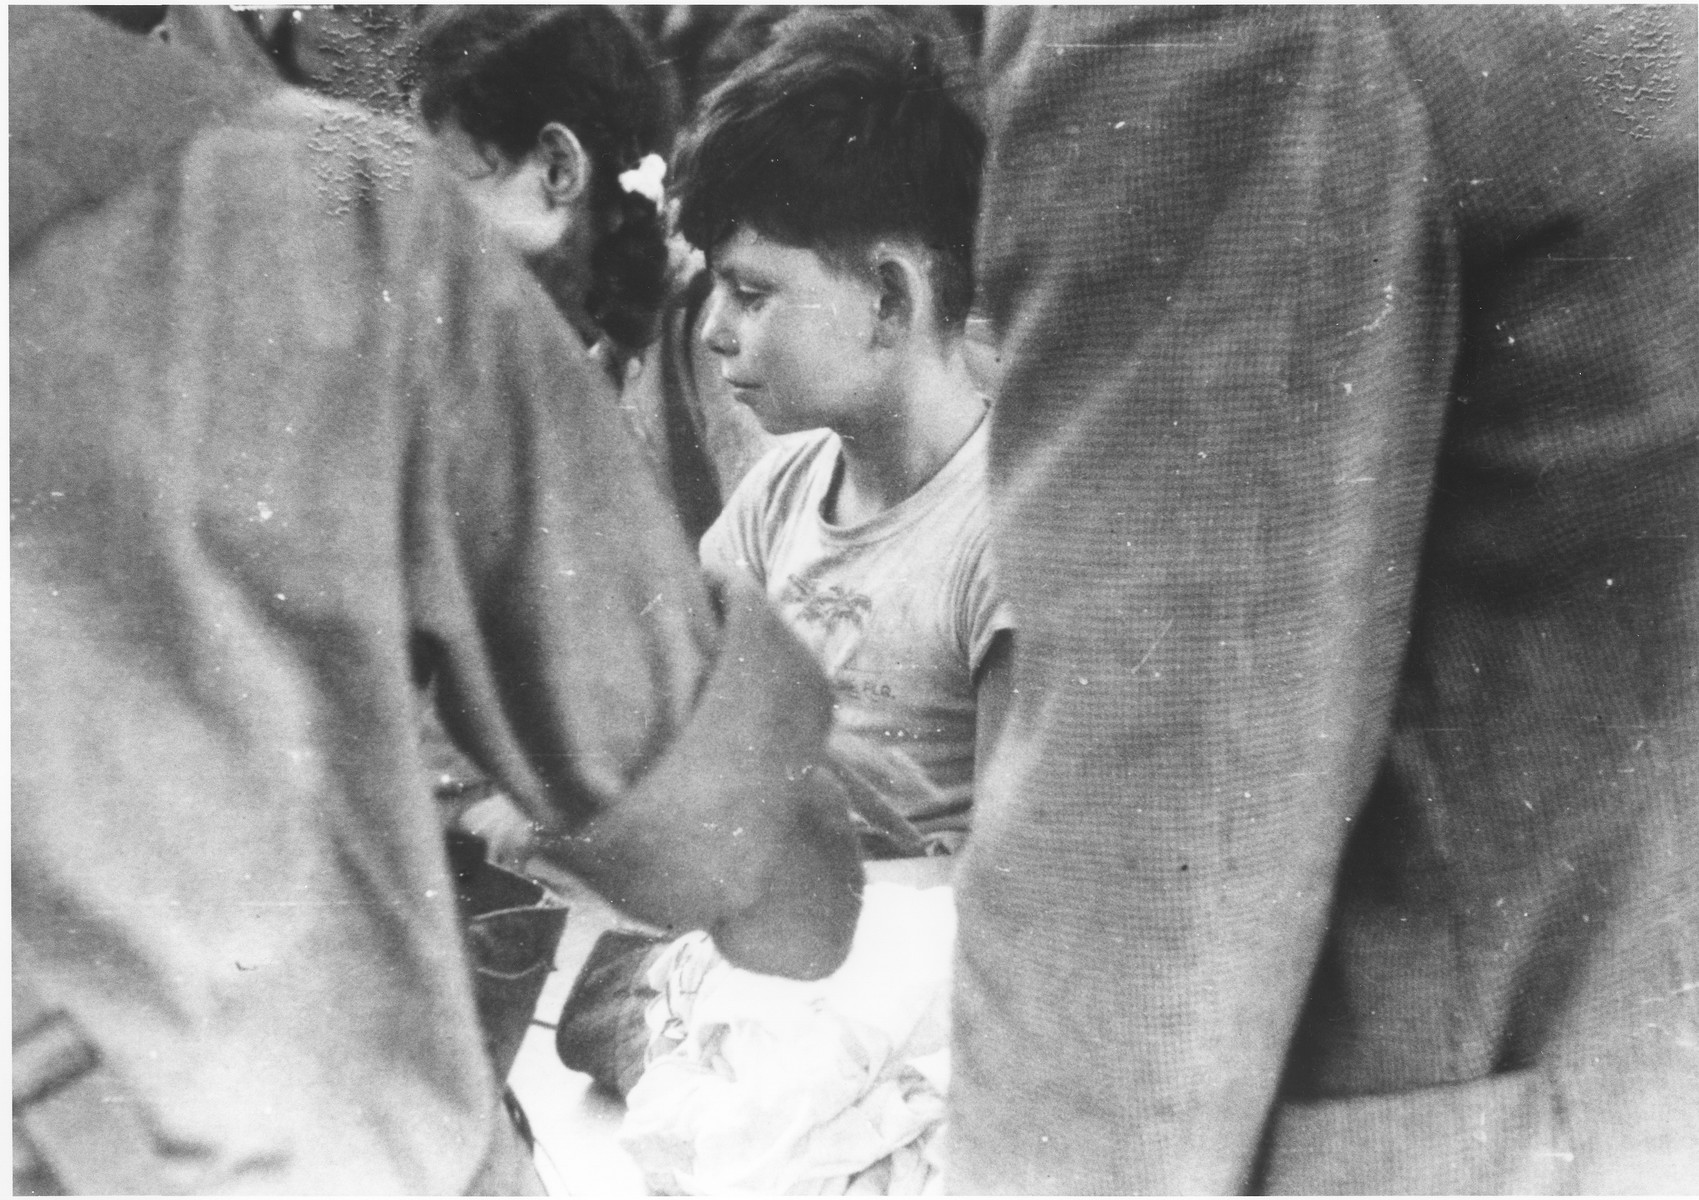 A young Jewish boy, who is one of the passengers on the illegal immigrant ship, Exodus 1947, has his papers checked by a British soldier on the dock in Haifa.